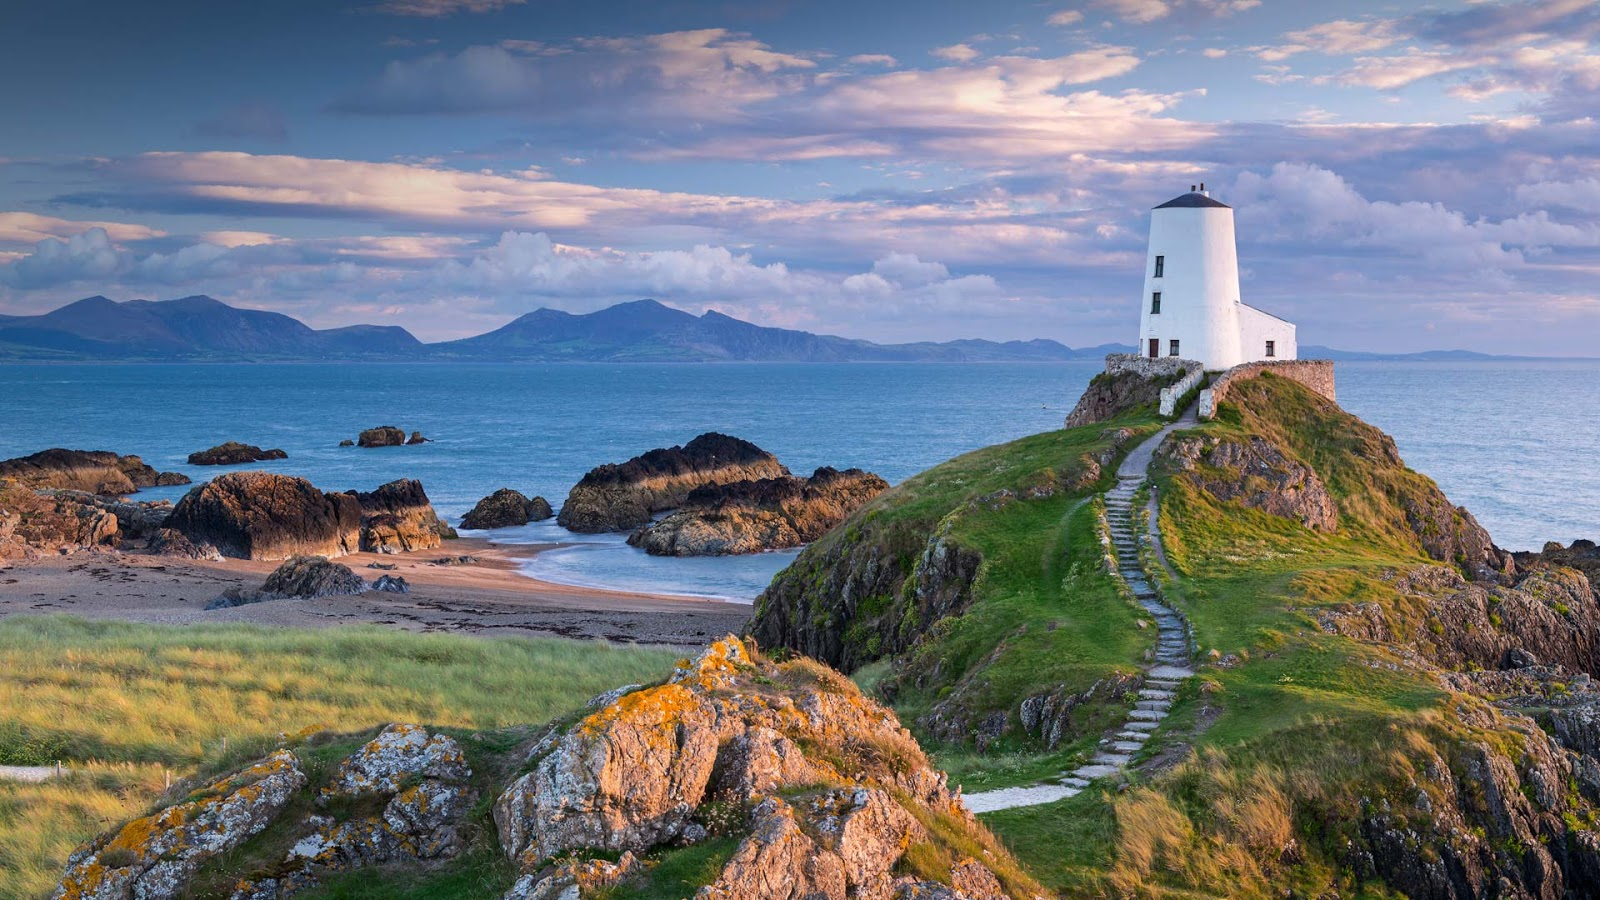 Tŵr Mawr Lighthouse on Llanddwyn Island in Anglesey, North Wales © Jon Arnold/DanitaDelimont.com